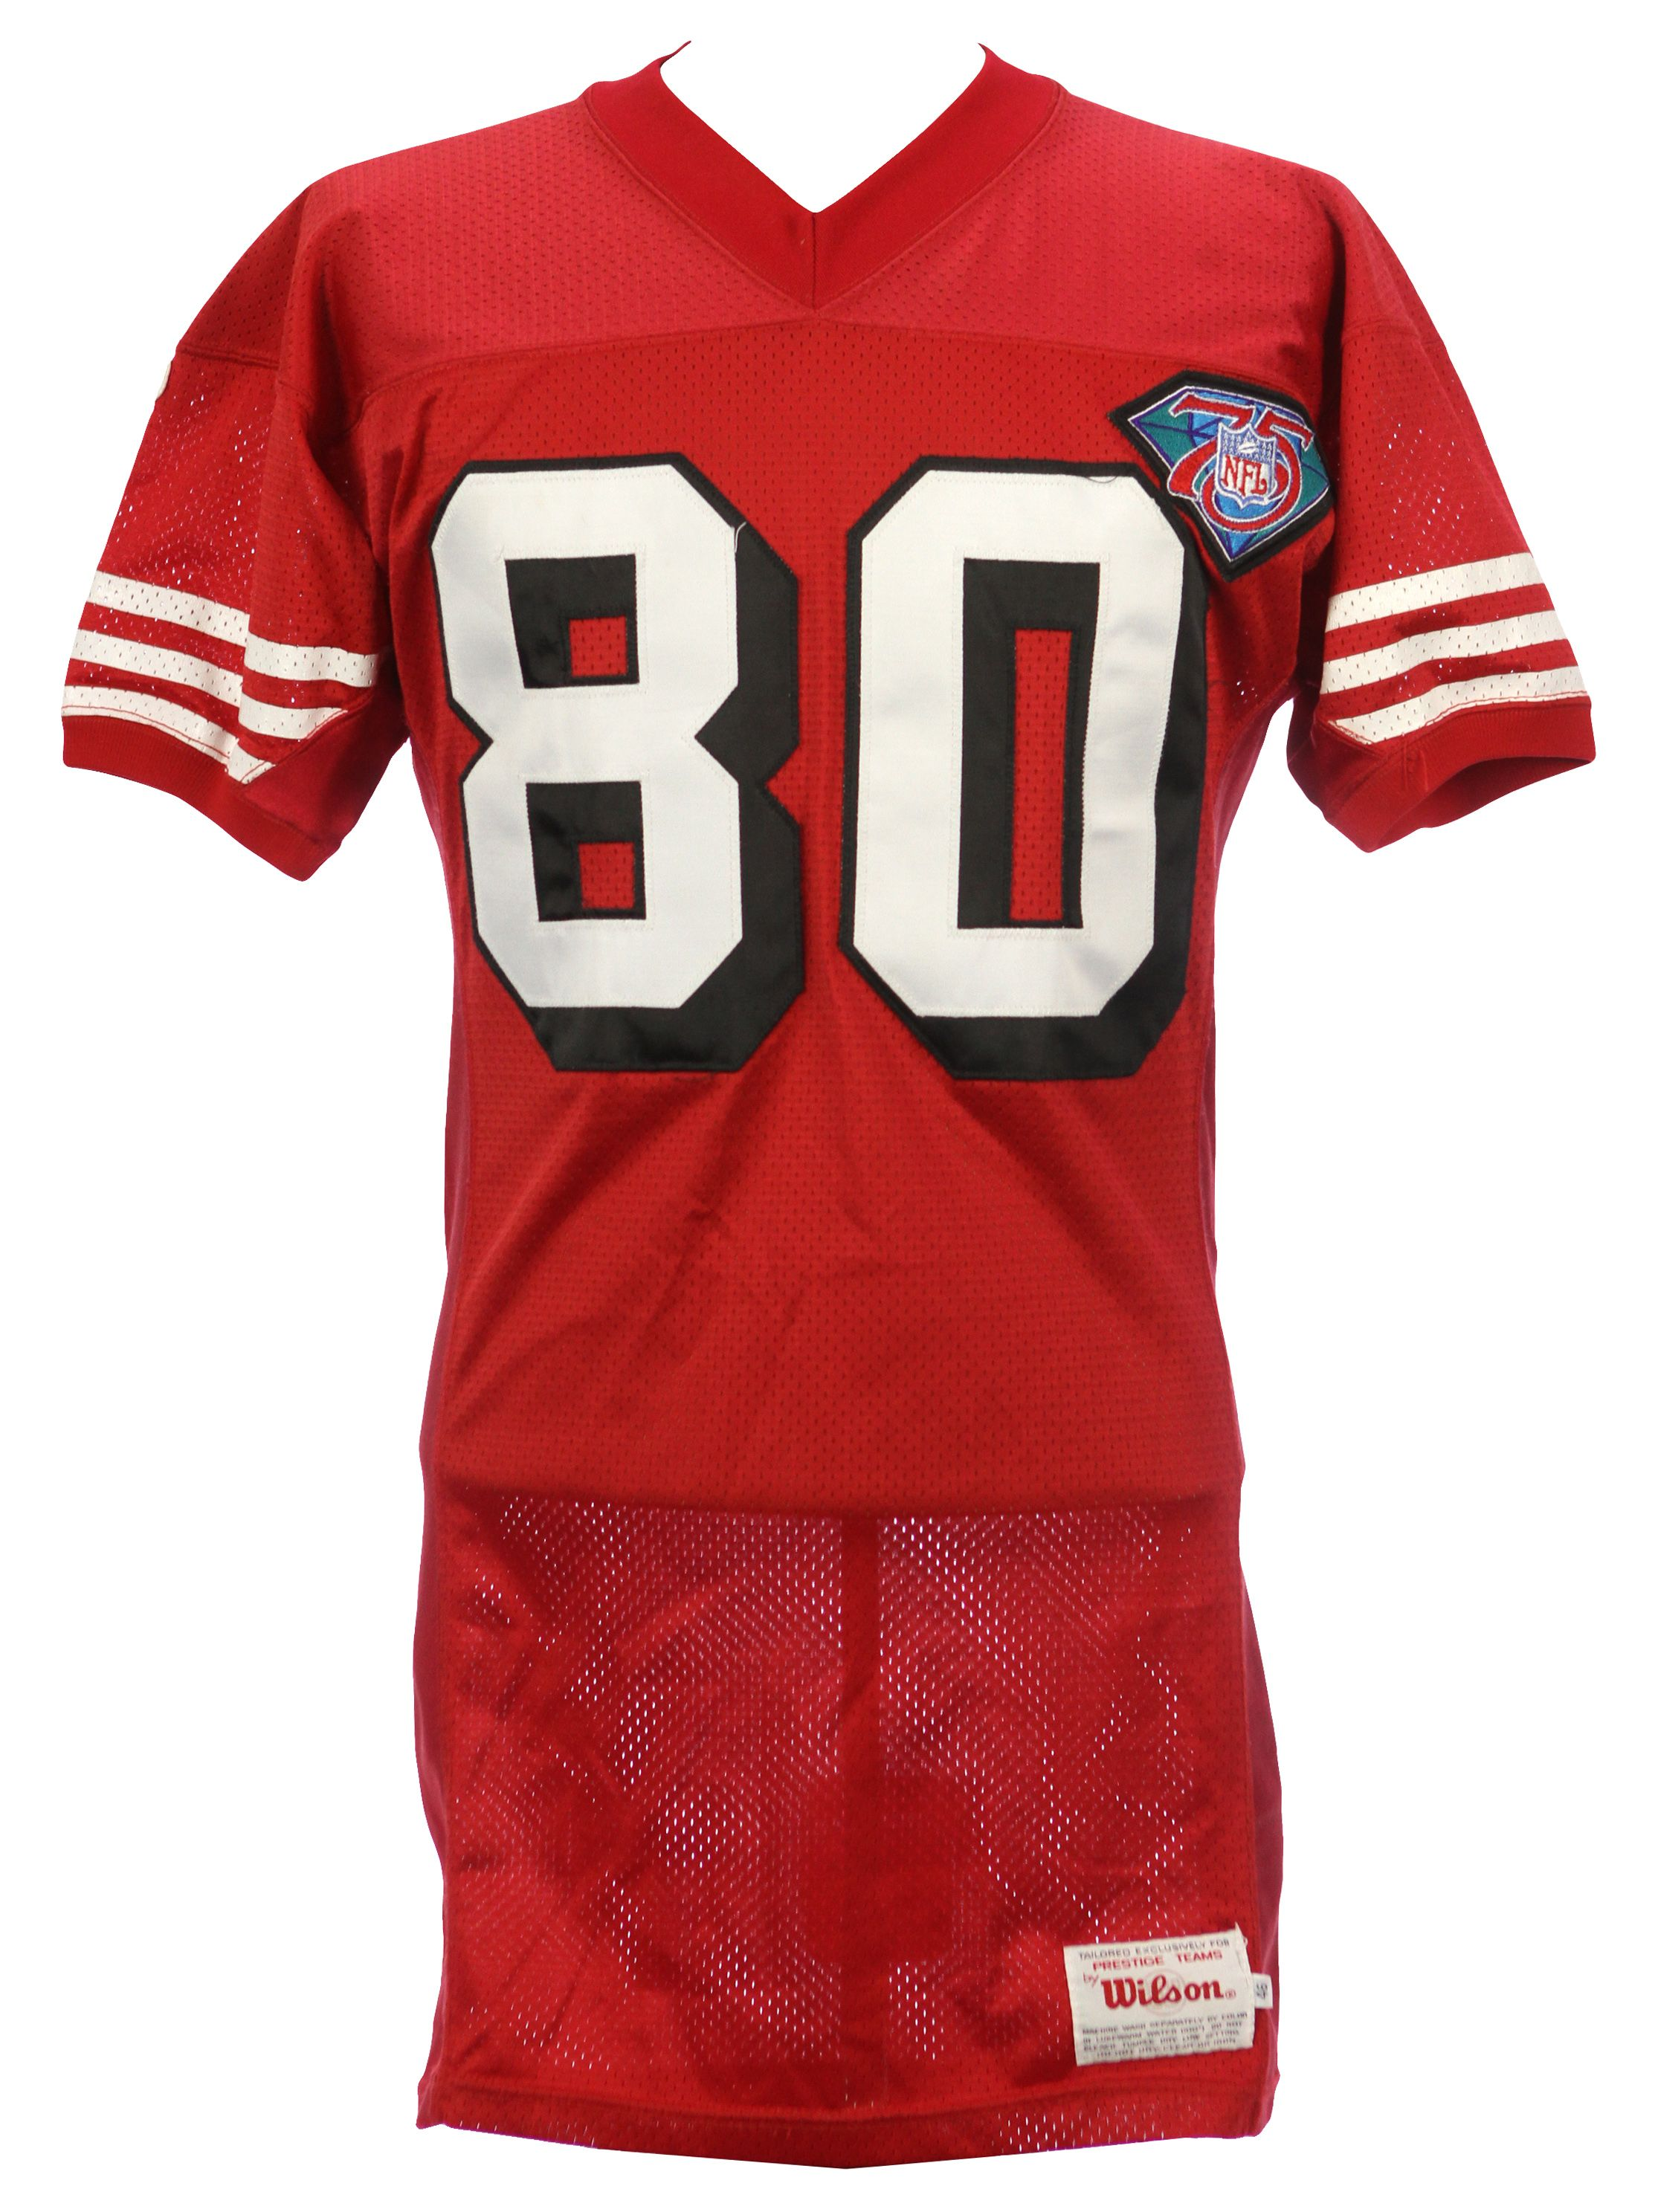 Jersey Loa 1994 october San Francisco A10 Team Worn Lot Rice 49ers mears Game 23 Jerry Home - Detail defbddecddbd|5 Gamers To Watch In Week 8